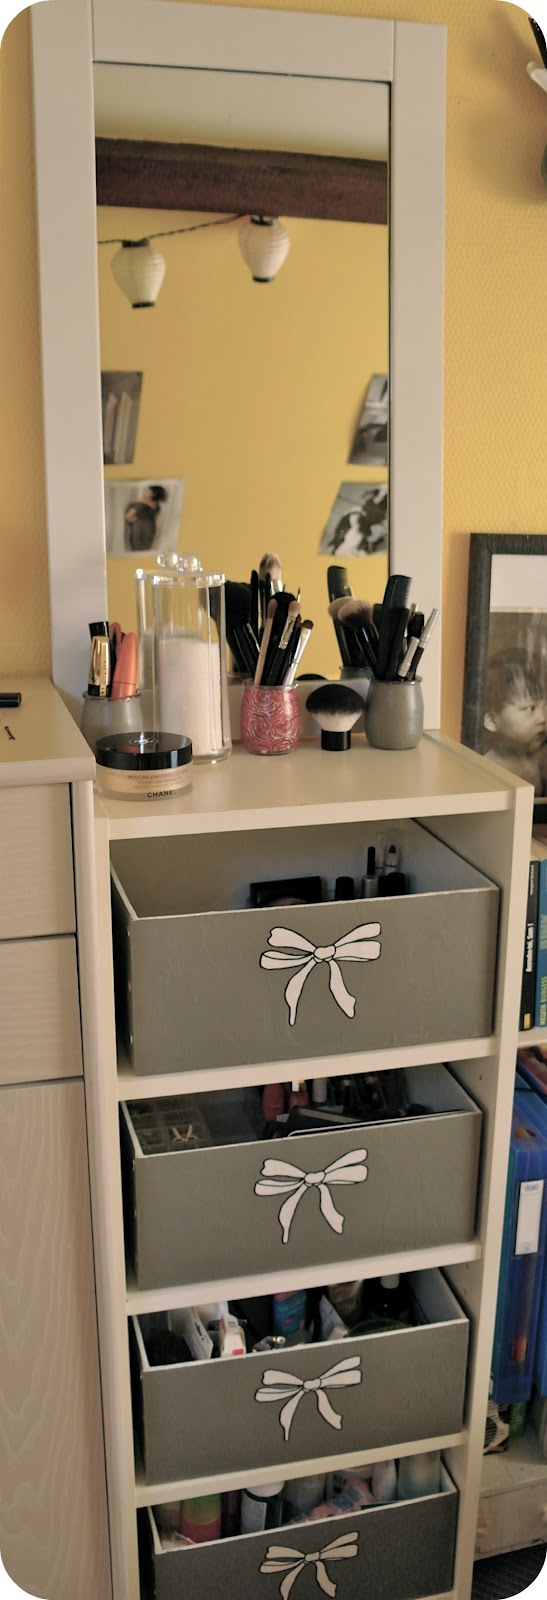 br ves de maquillage mes astuces de rangements make up. Black Bedroom Furniture Sets. Home Design Ideas